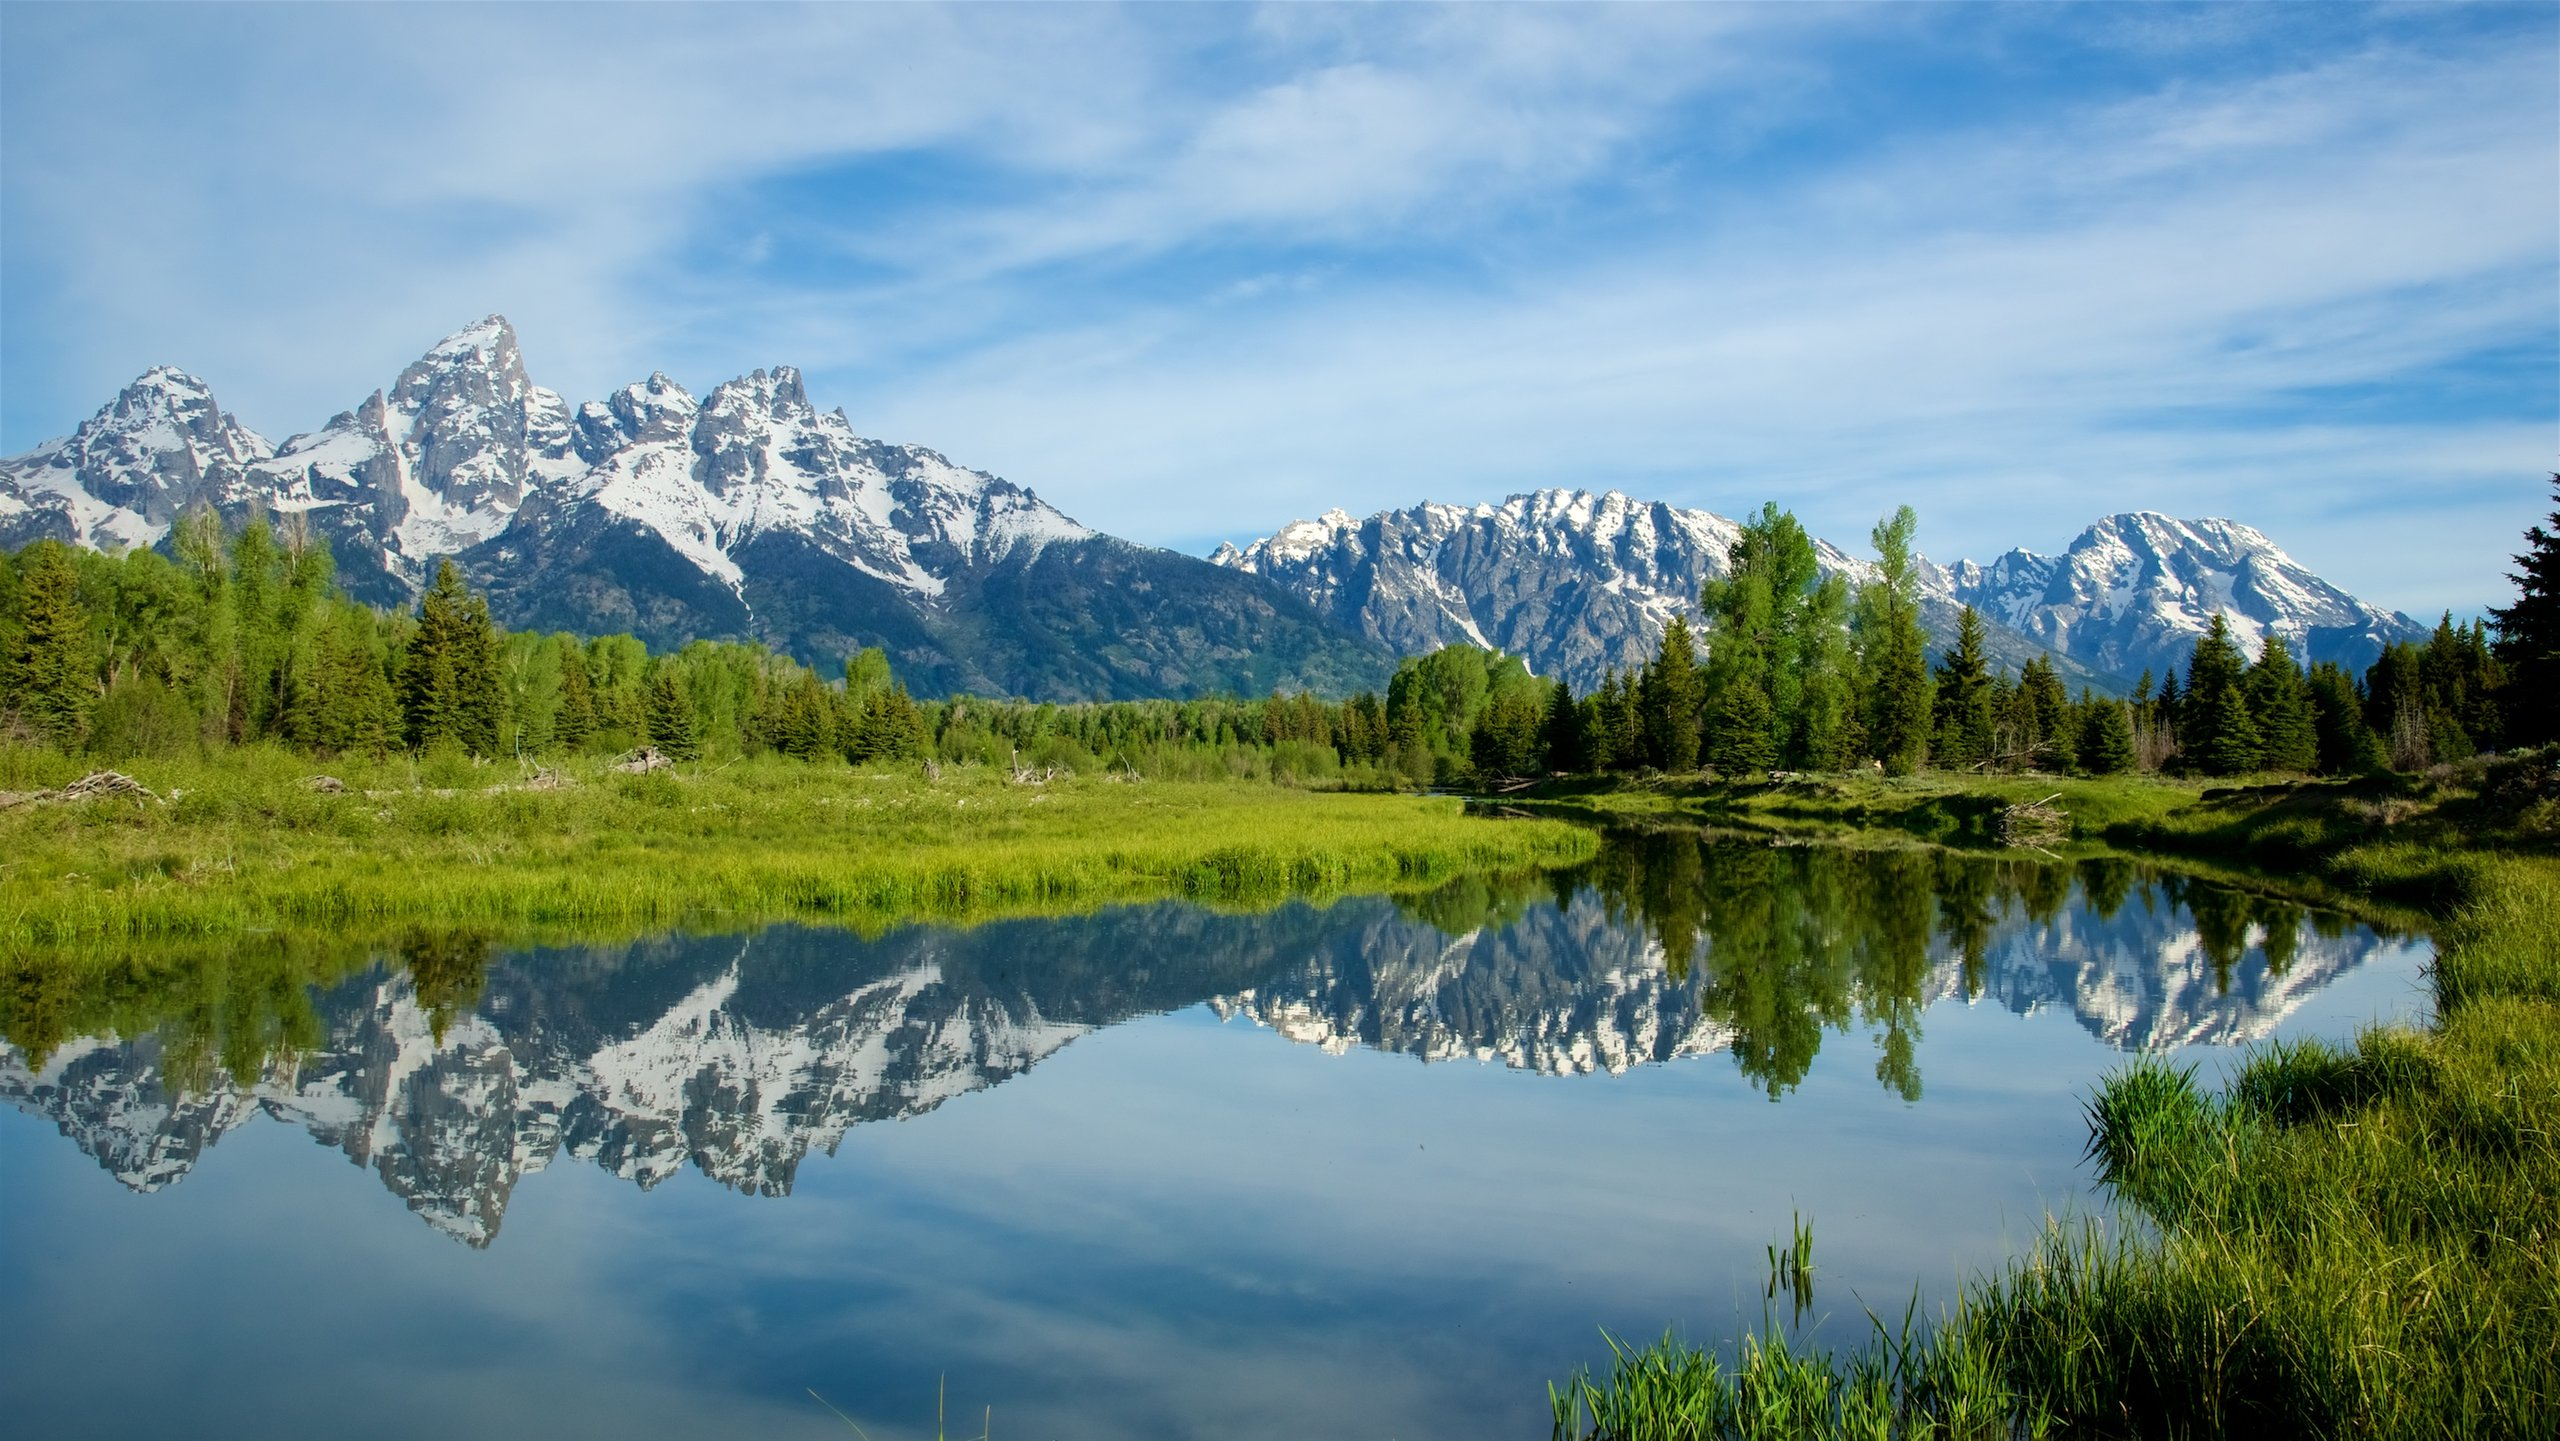 Cheap Hotels in Jackson Hole - Find $63 Hotel Deals